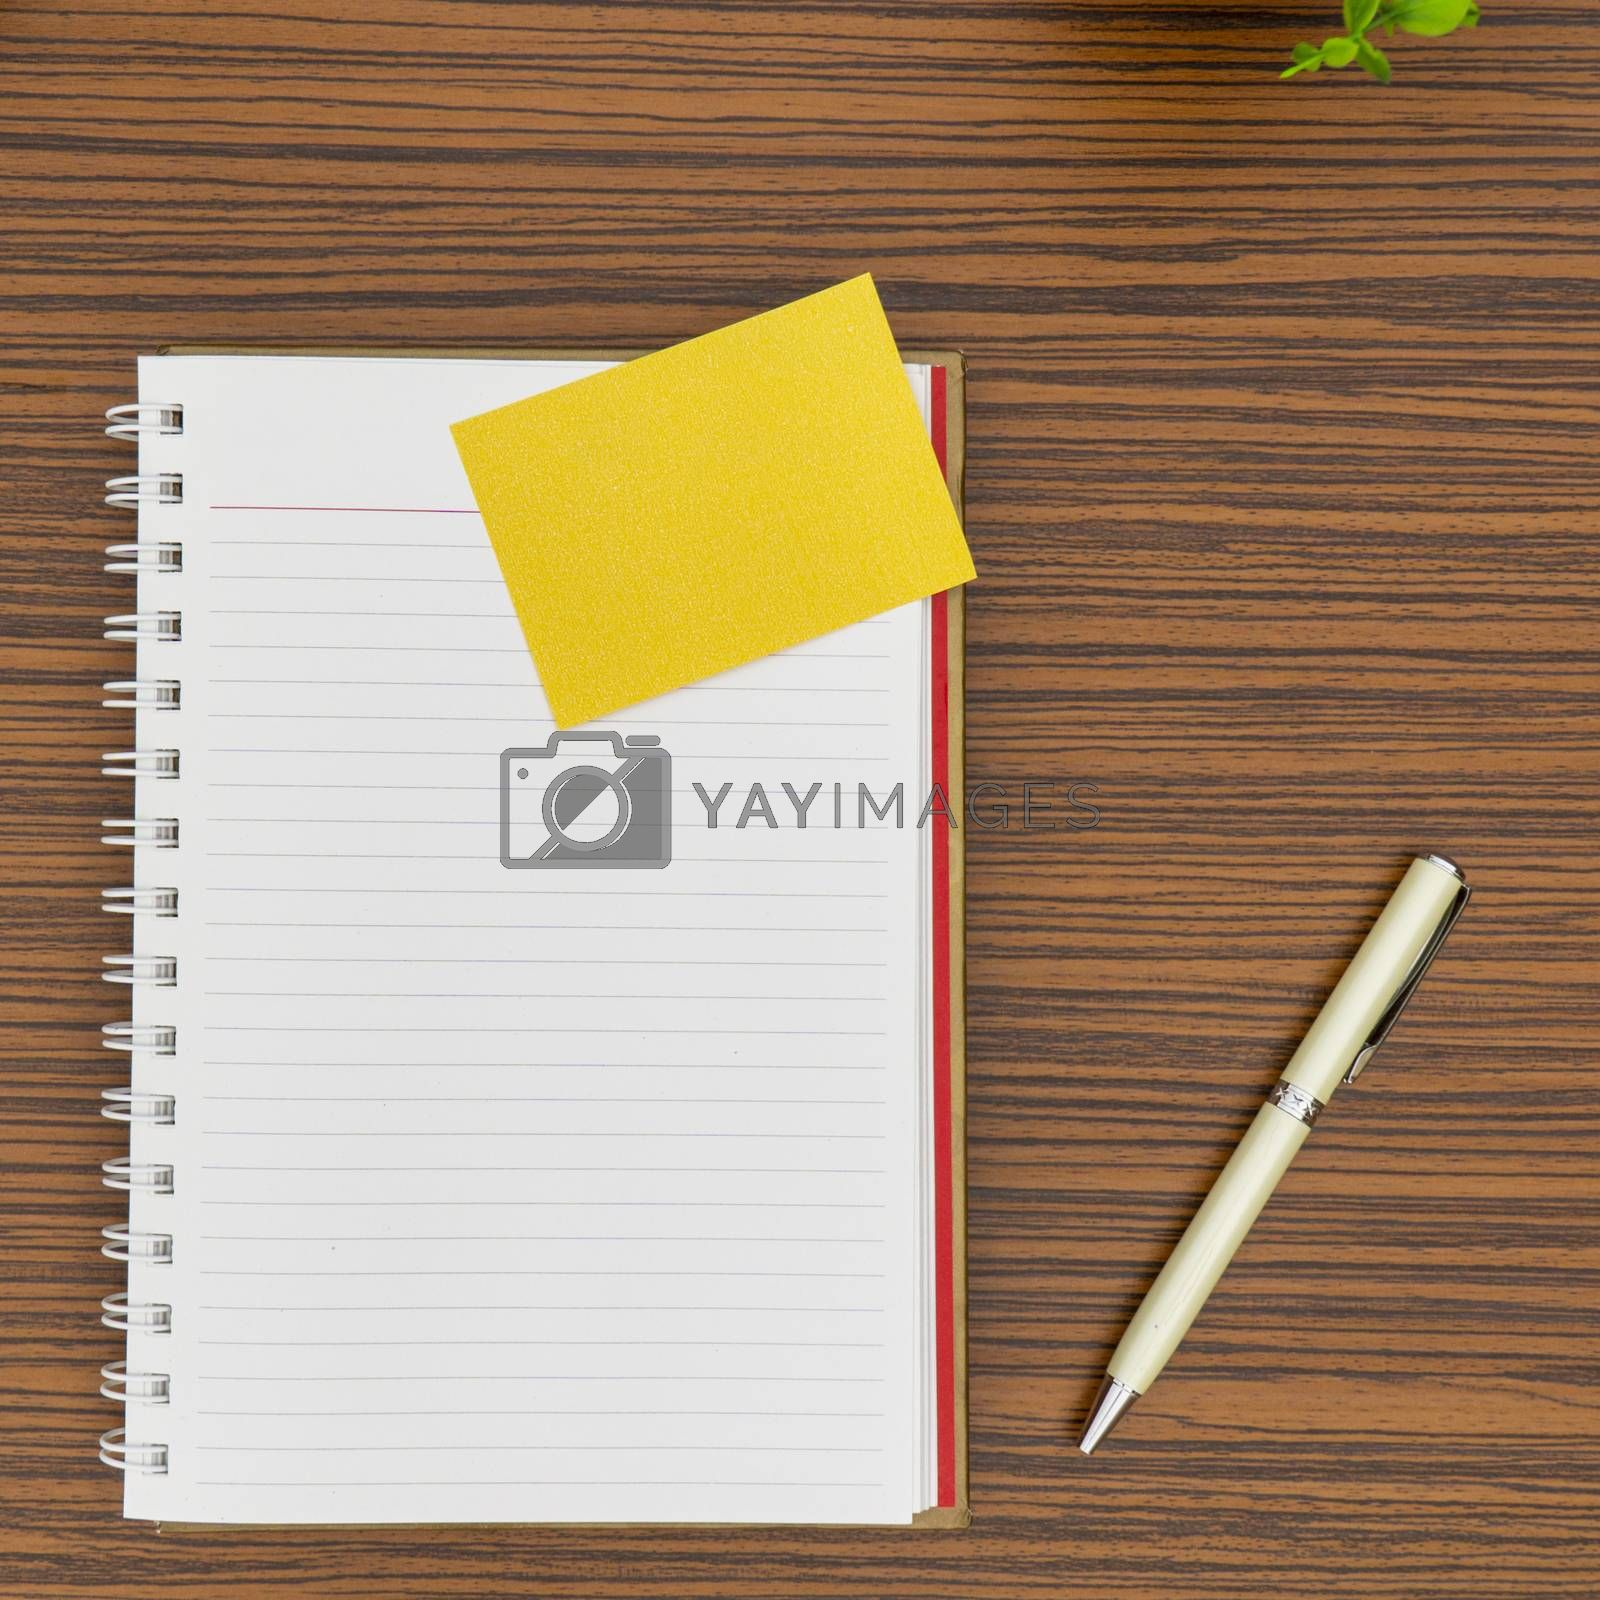 Personal notepad, yellow paper note and a pen on a zebra wood brown striped table.